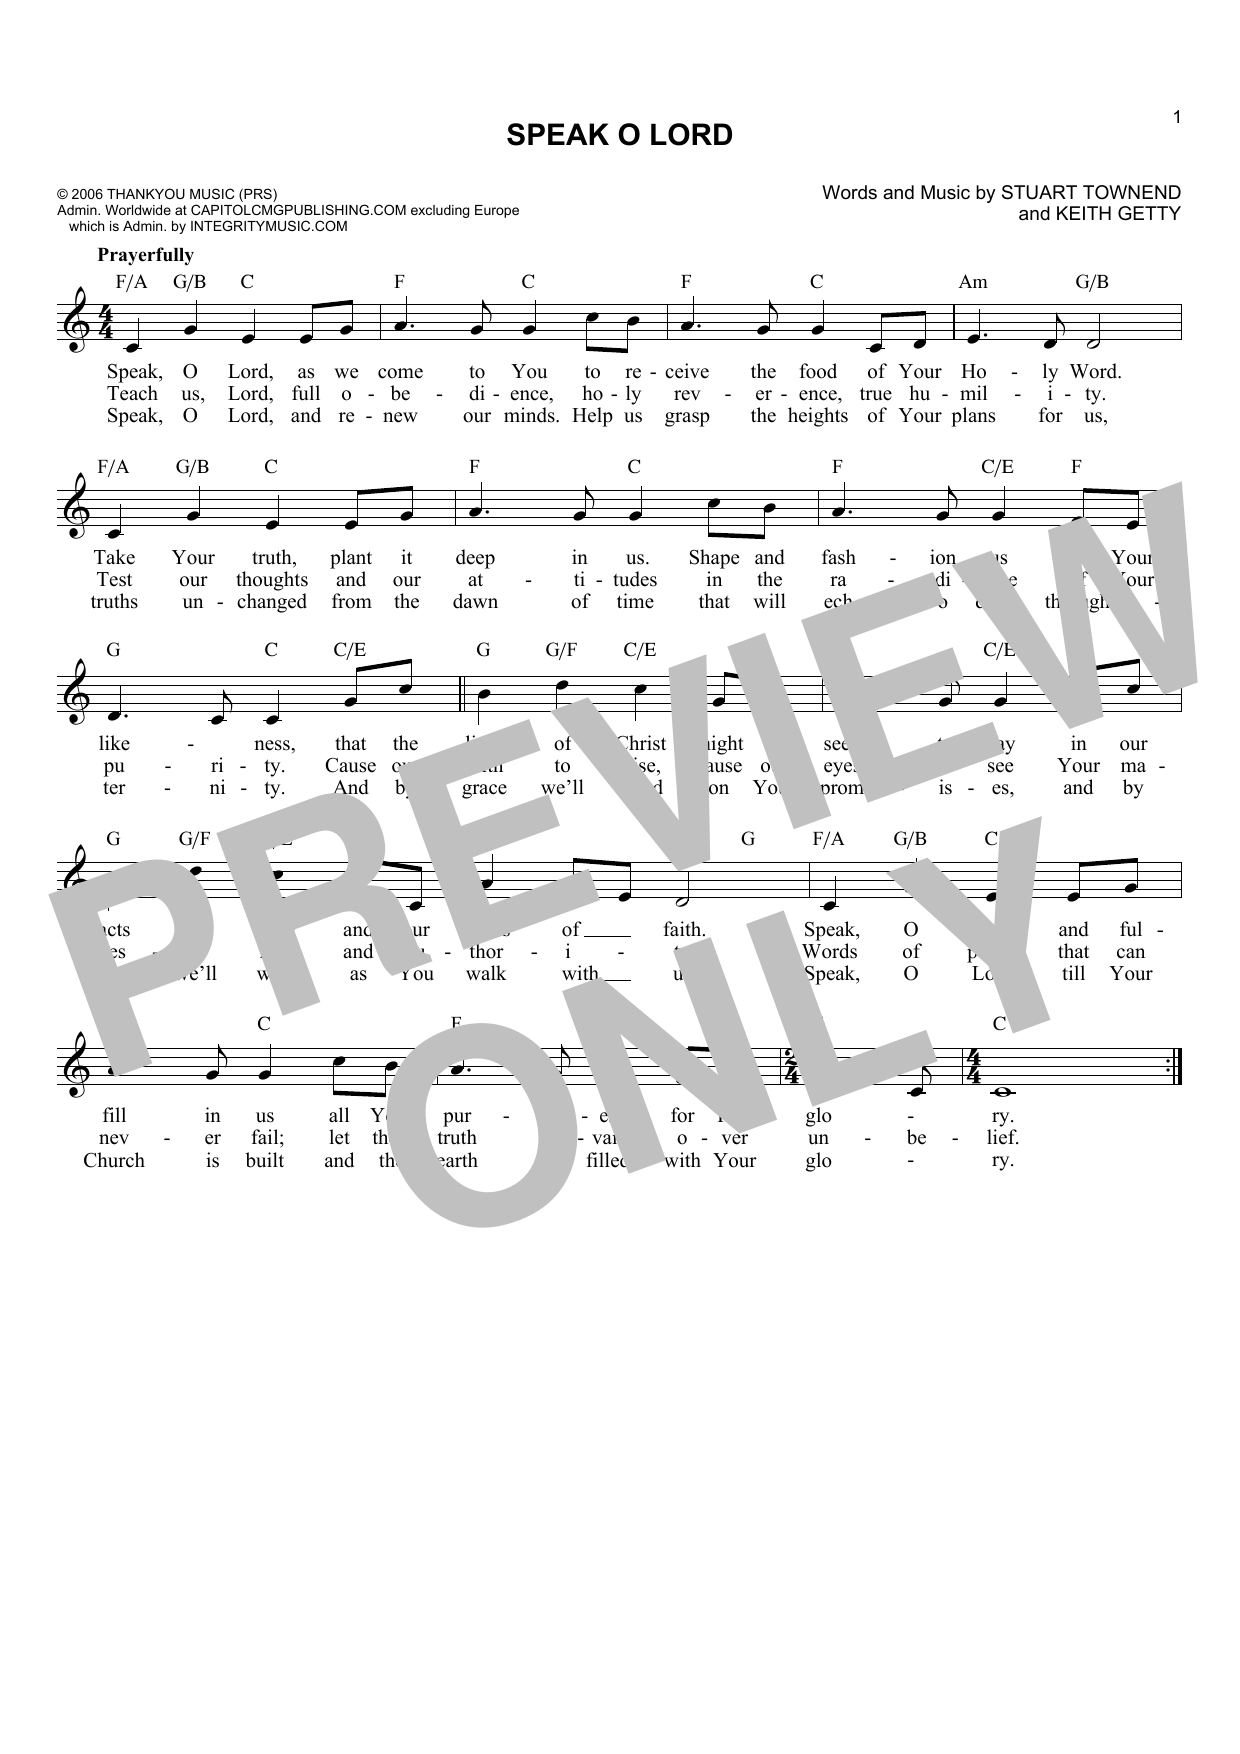 Keith Getty Speak O Lord sheet music notes and chords. Download Printable PDF.